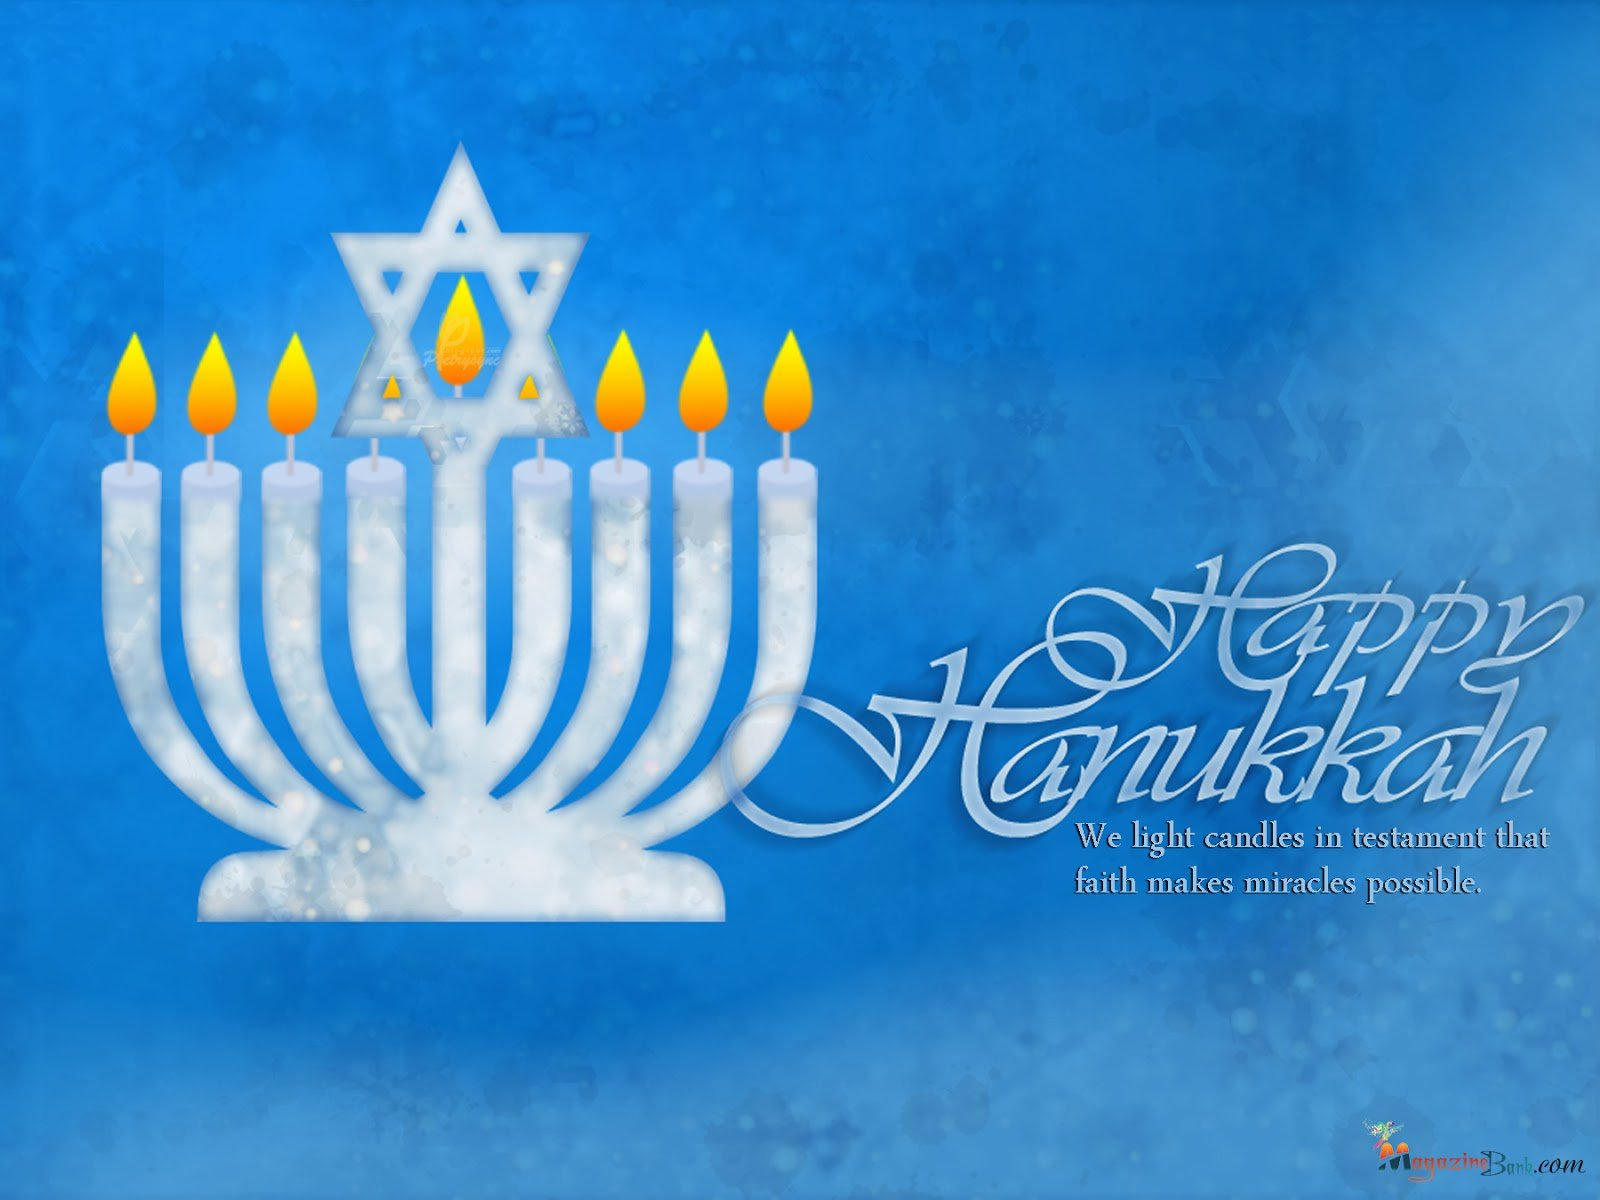 Hanukkah Jewish Festival Holiday Candelabrum Candle HD Wallpapers Download Free Images Wallpaper [1000image.com]